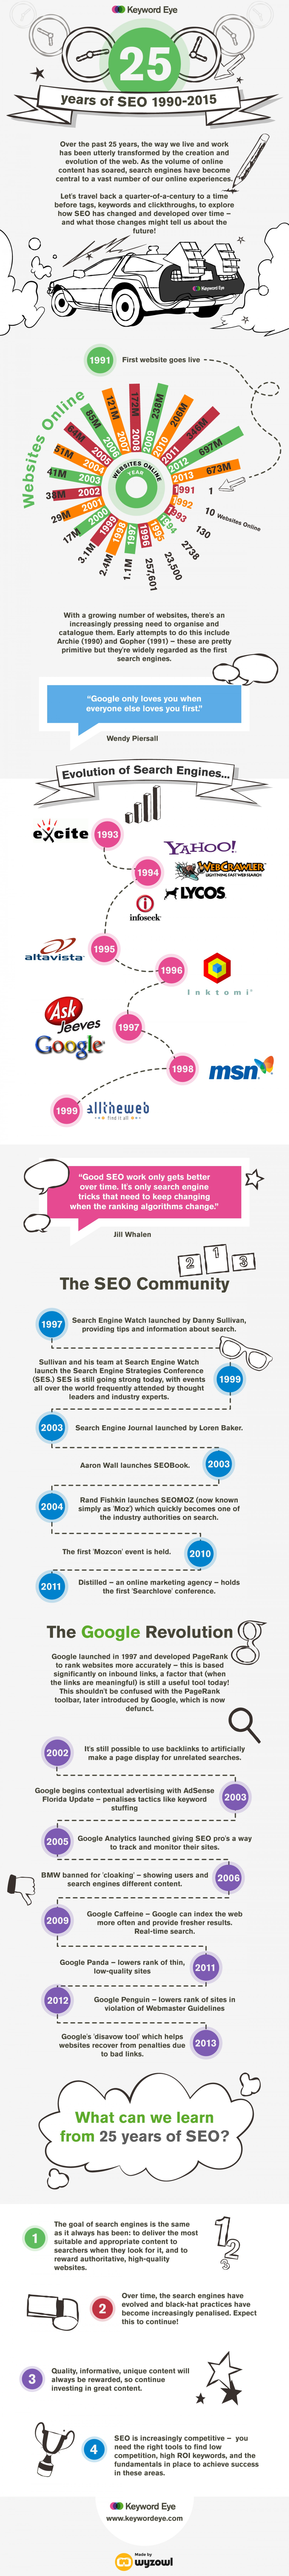 25-years-of-seo-1990-to-2015_54d9f7e884506_w1500